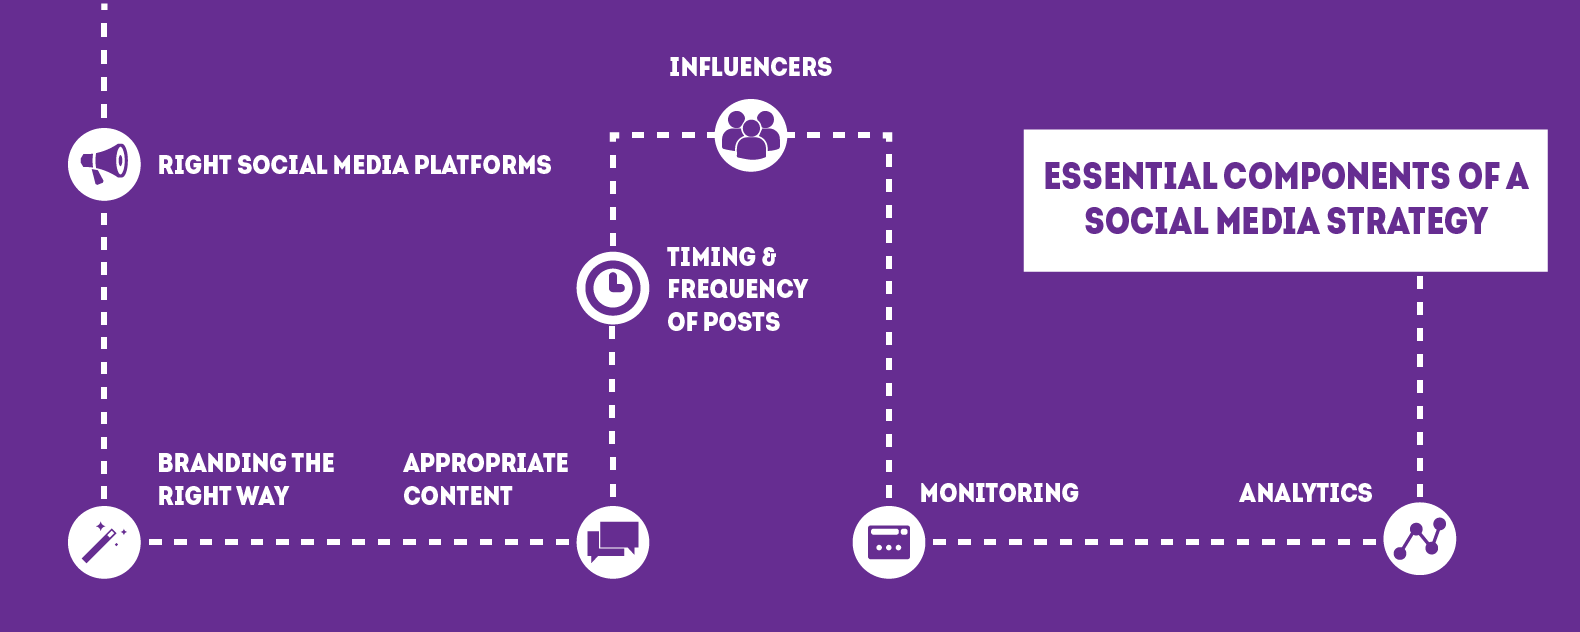 essential-components-social-media-strategy